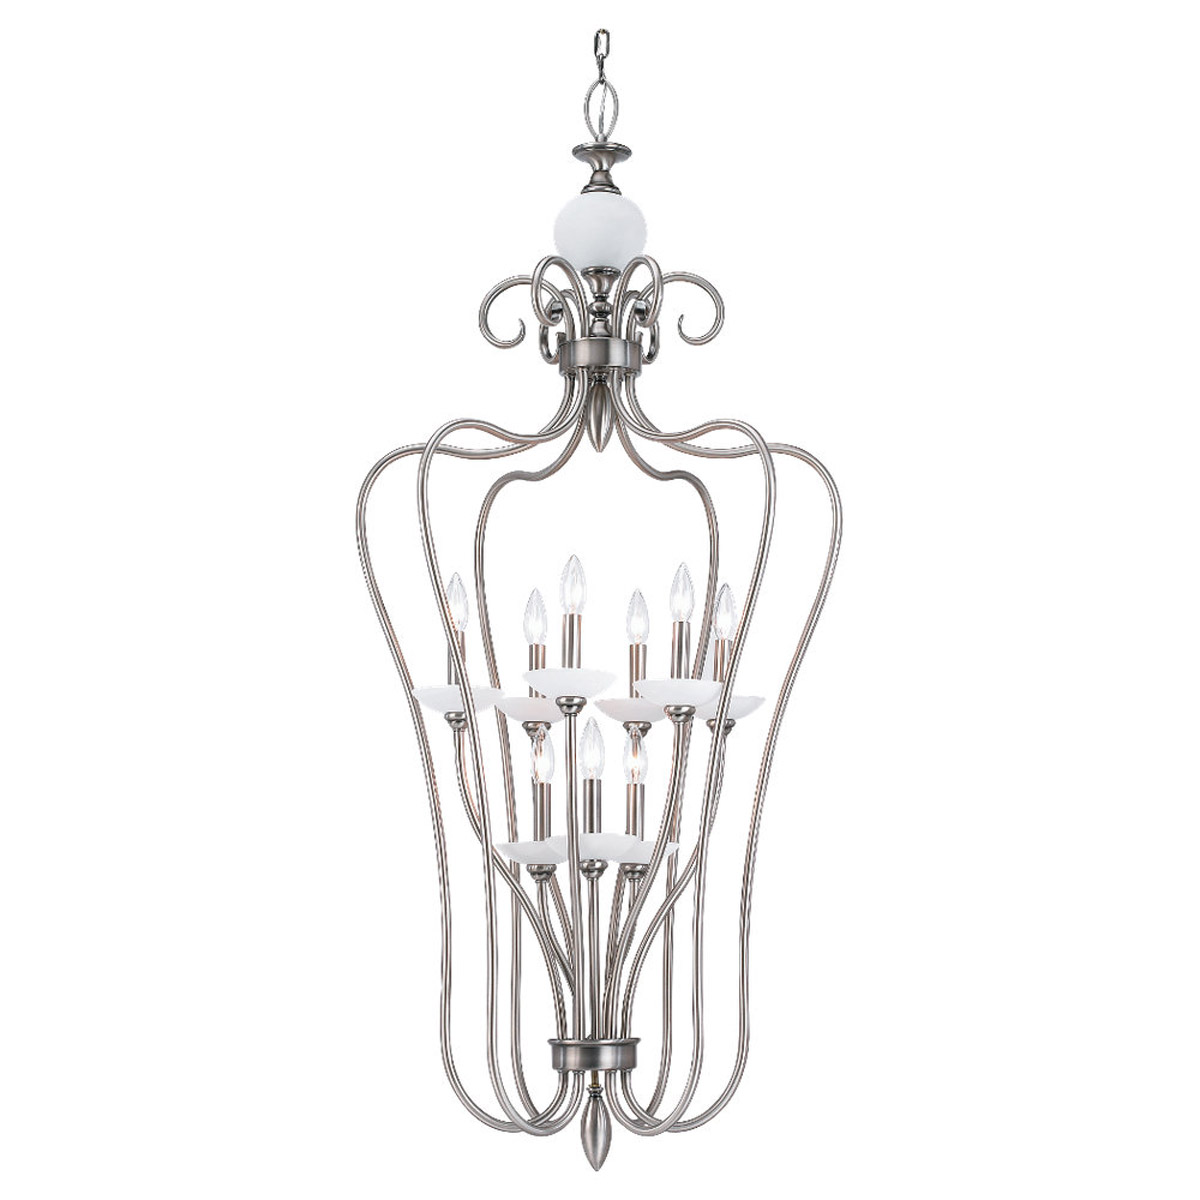 Sea Gull Lighting Montclaire 9 Light Foyer Pendant in Antique Brushed Nickel 51107-965